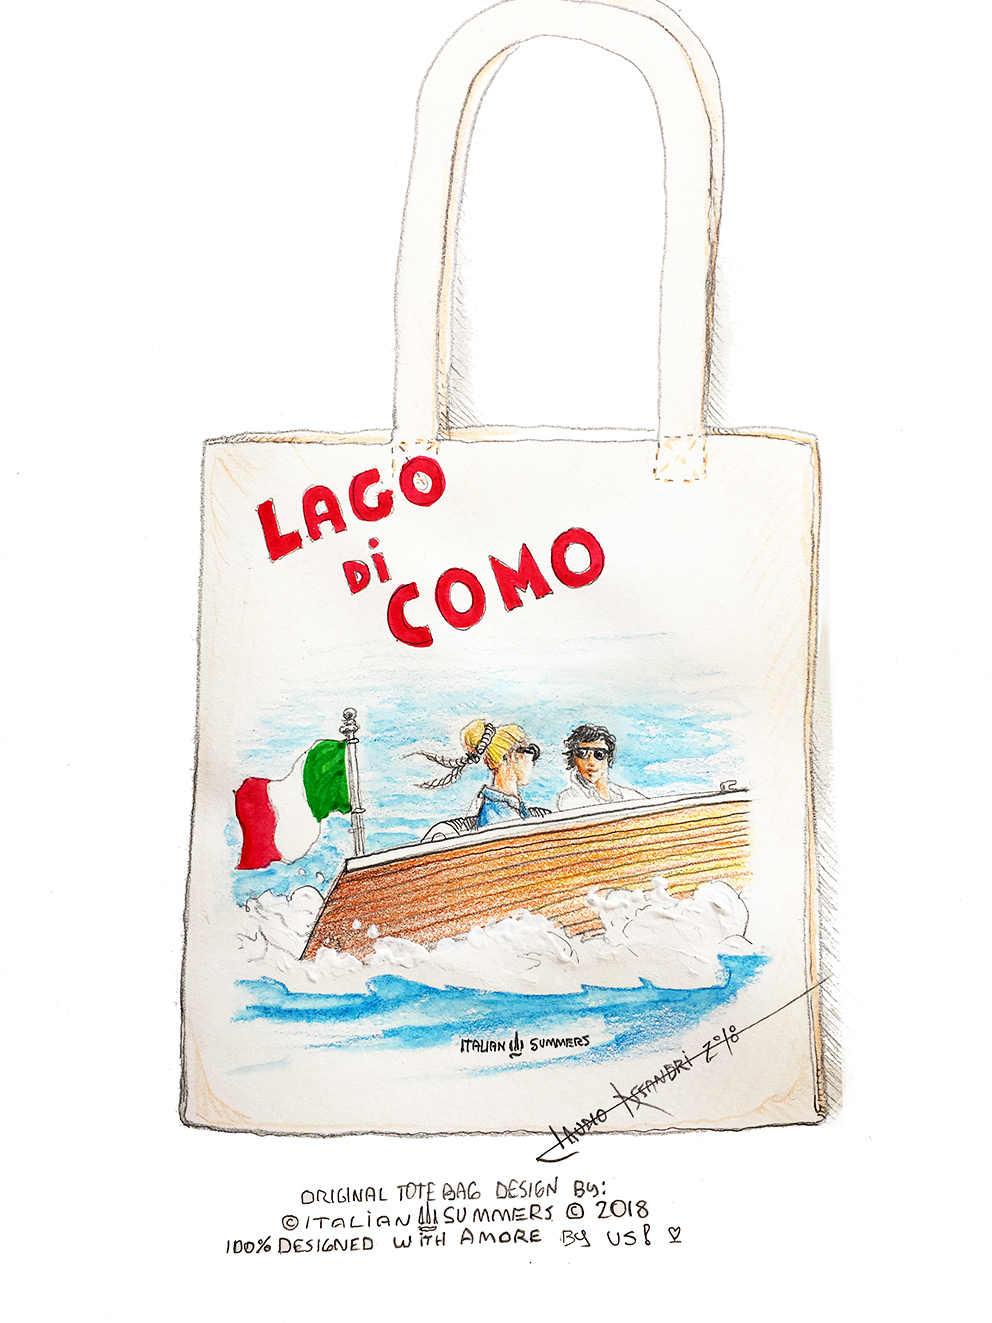 Lake Como Wedding bridal welcome bag by ITALIAN SUMMERS